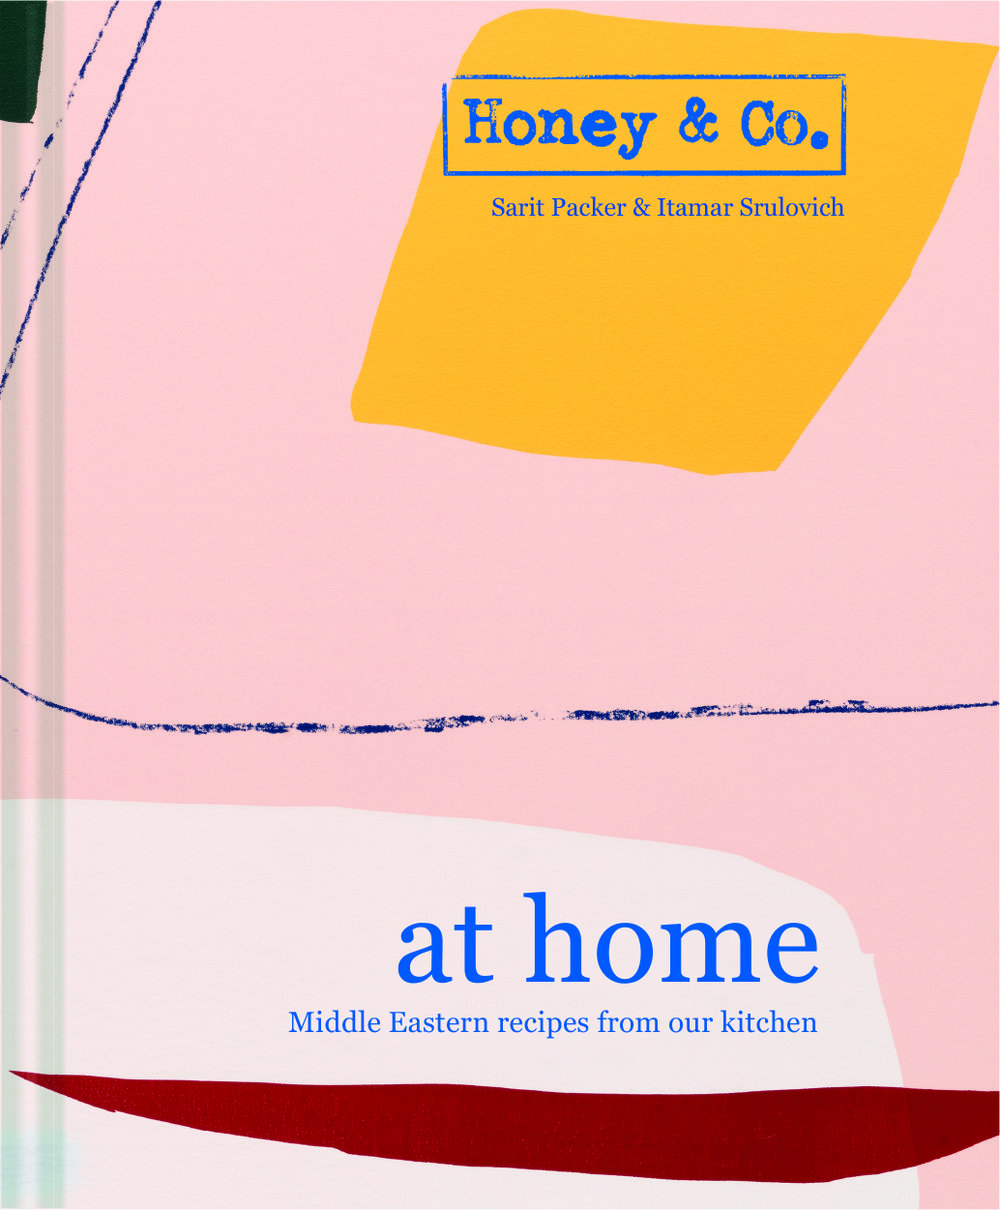 Honey & Co at Home by Sarit Packer & Itamar Srulovich.jpg